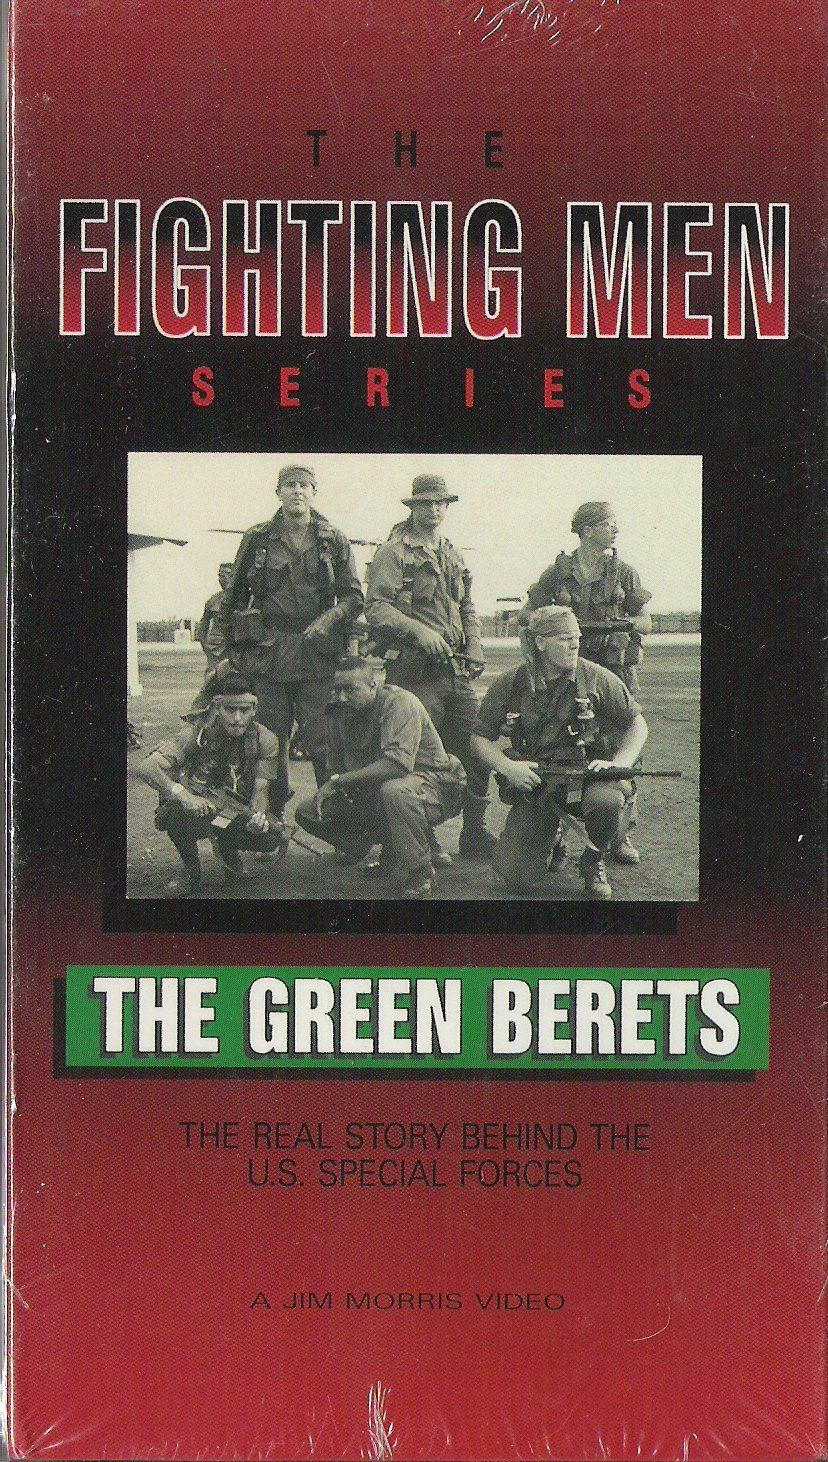 Amazon com: The Fighting Men Series: The Green Berets - The